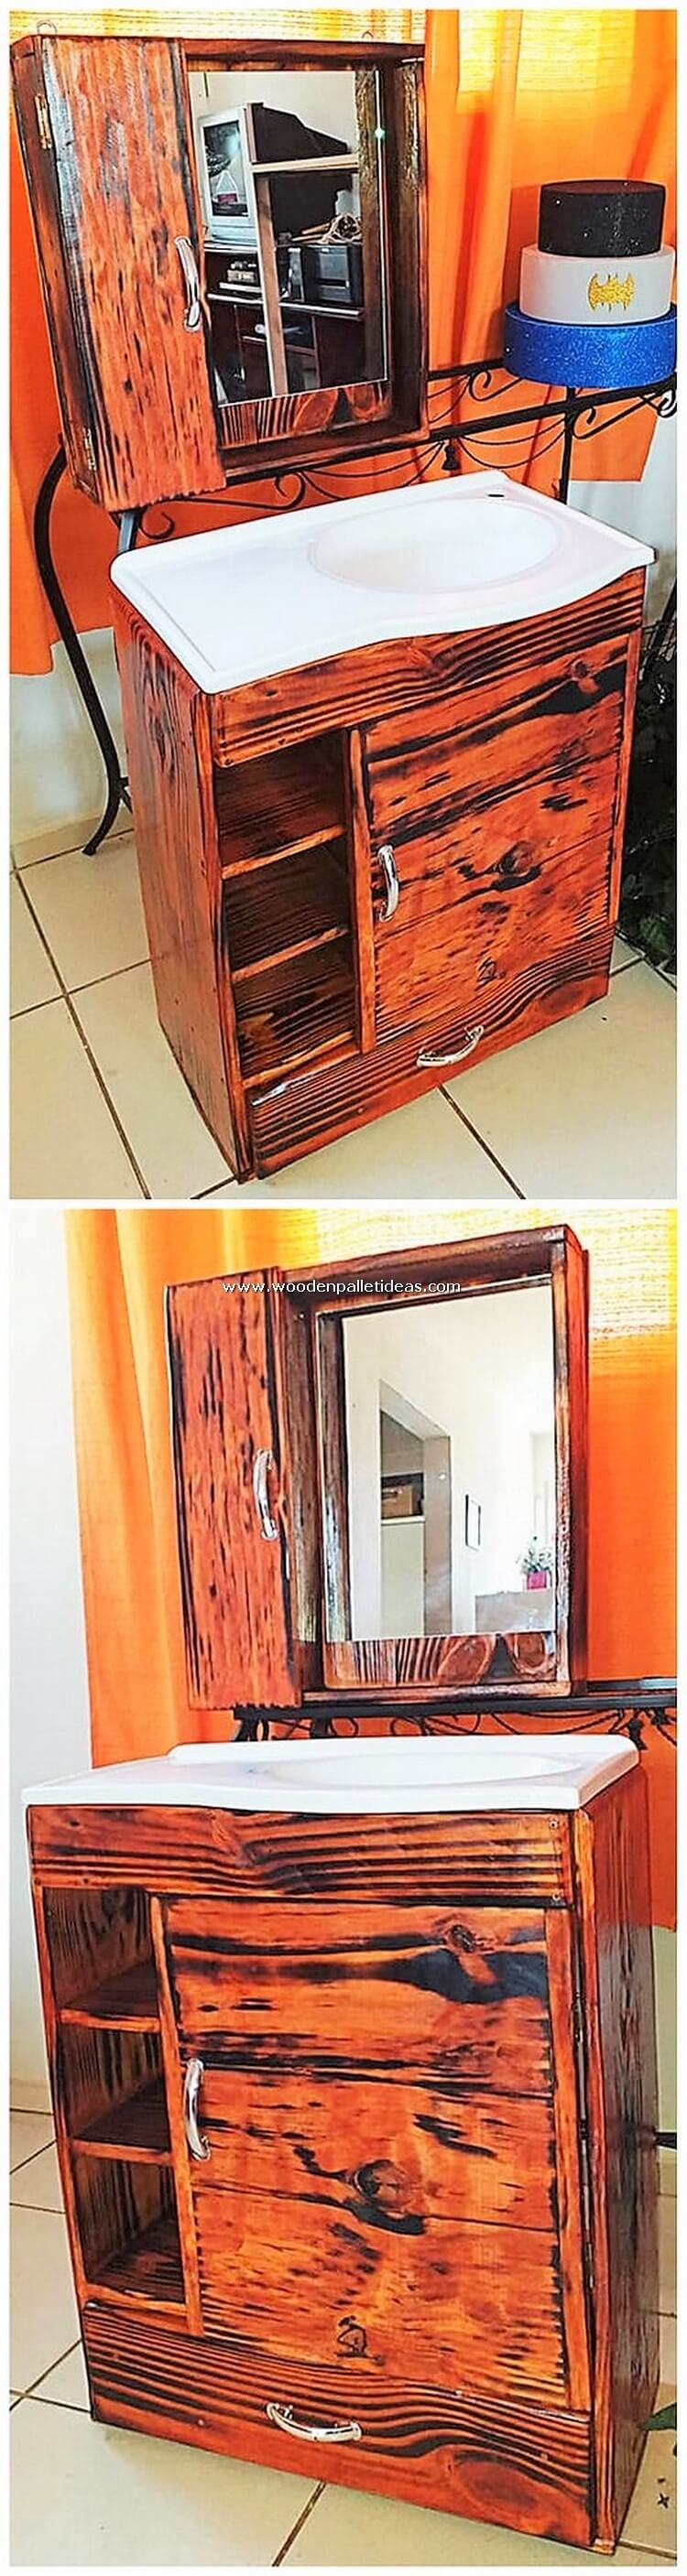 Pallet-Sink-with-Cabinet-2